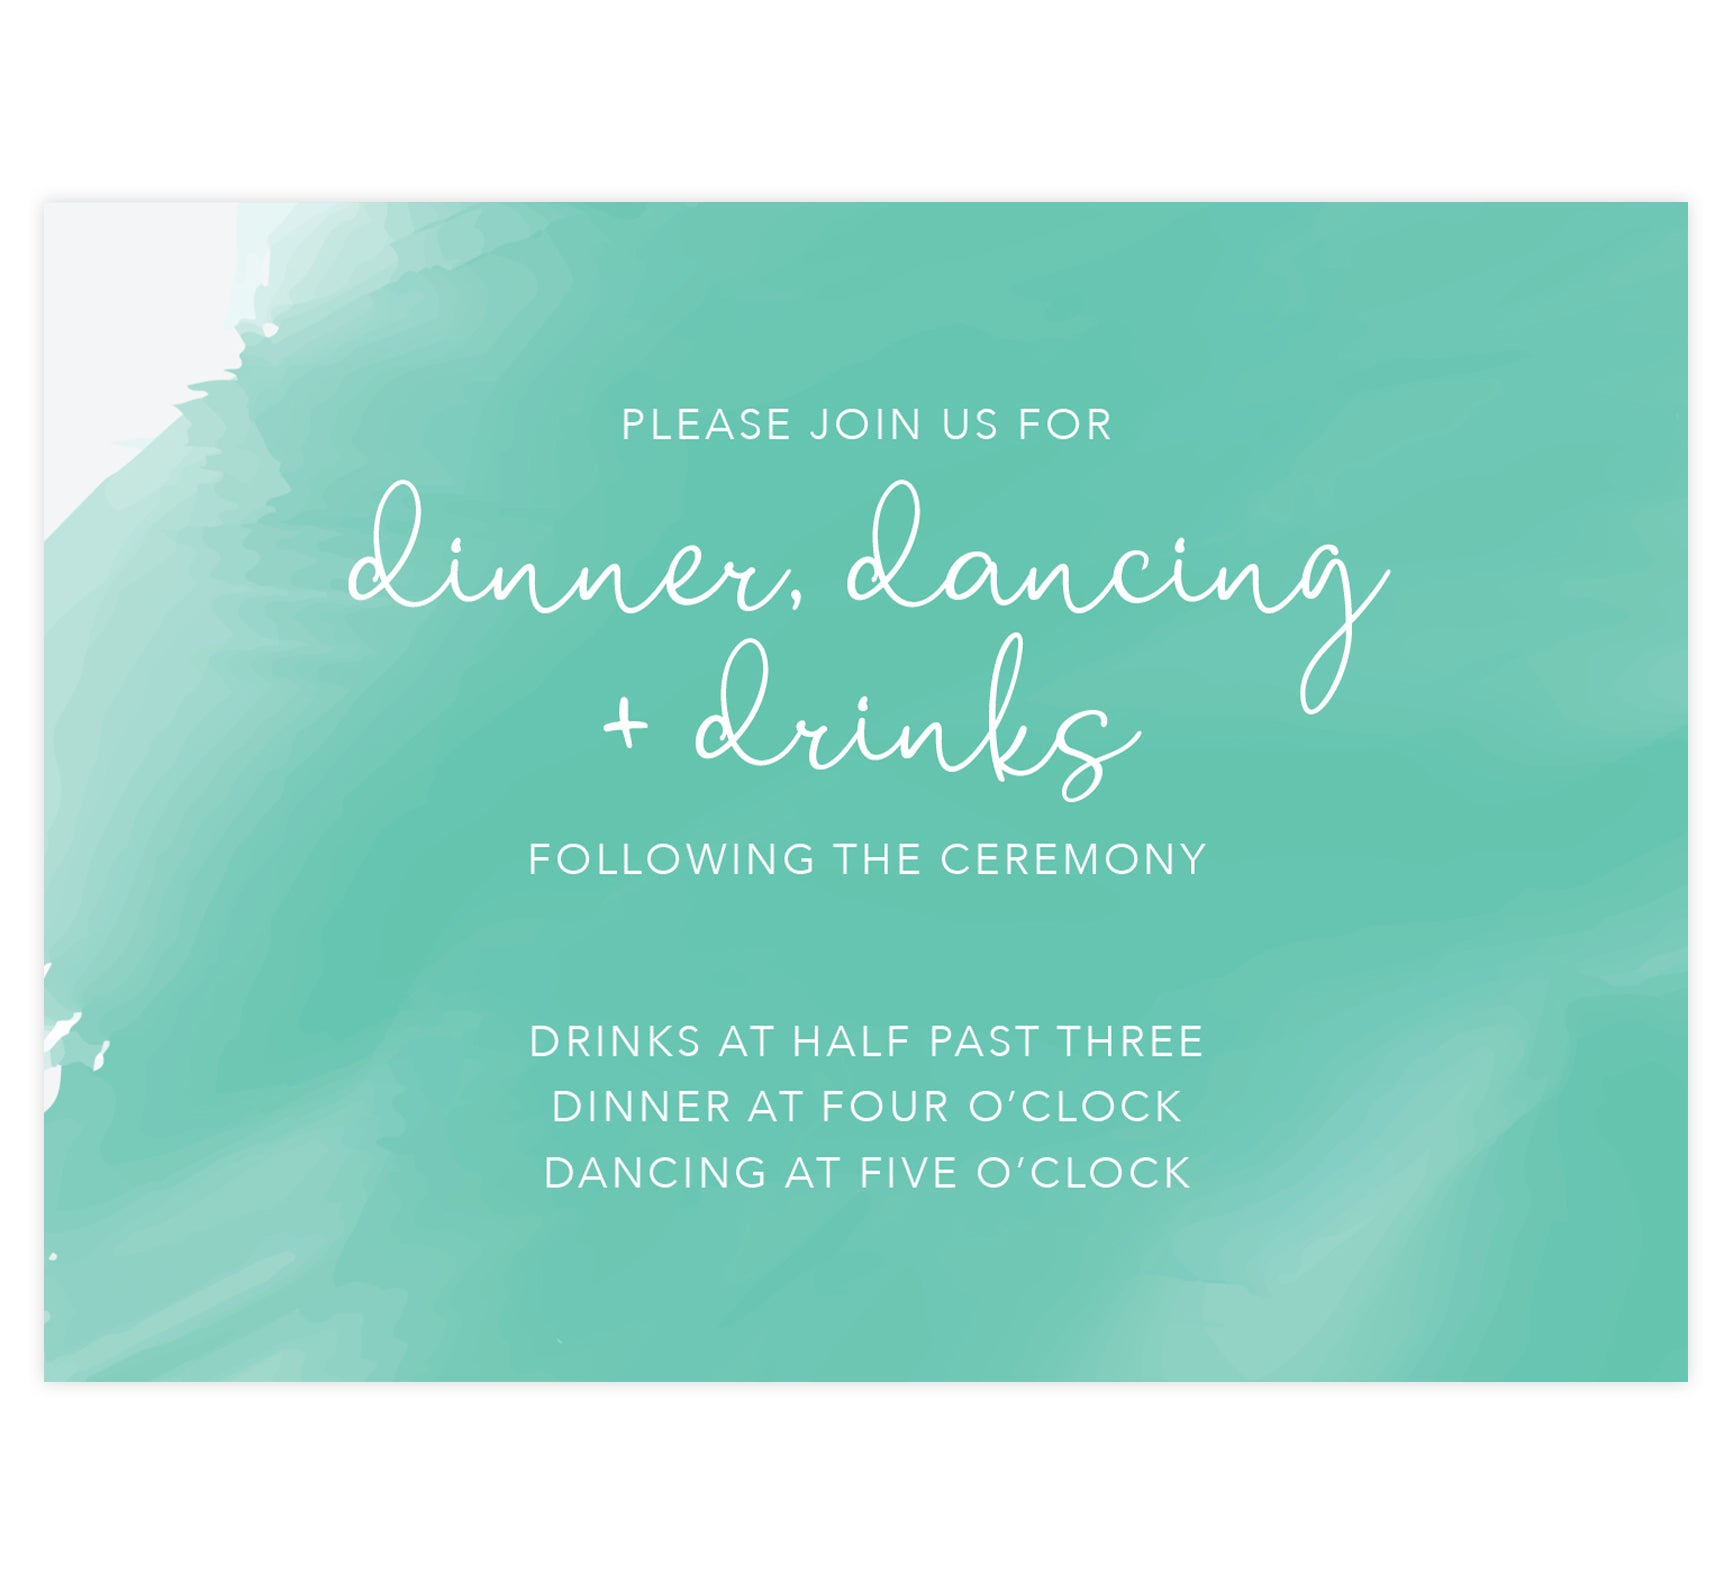 Tropic Teal wedding reception card; Bright teal watercolor background and white text